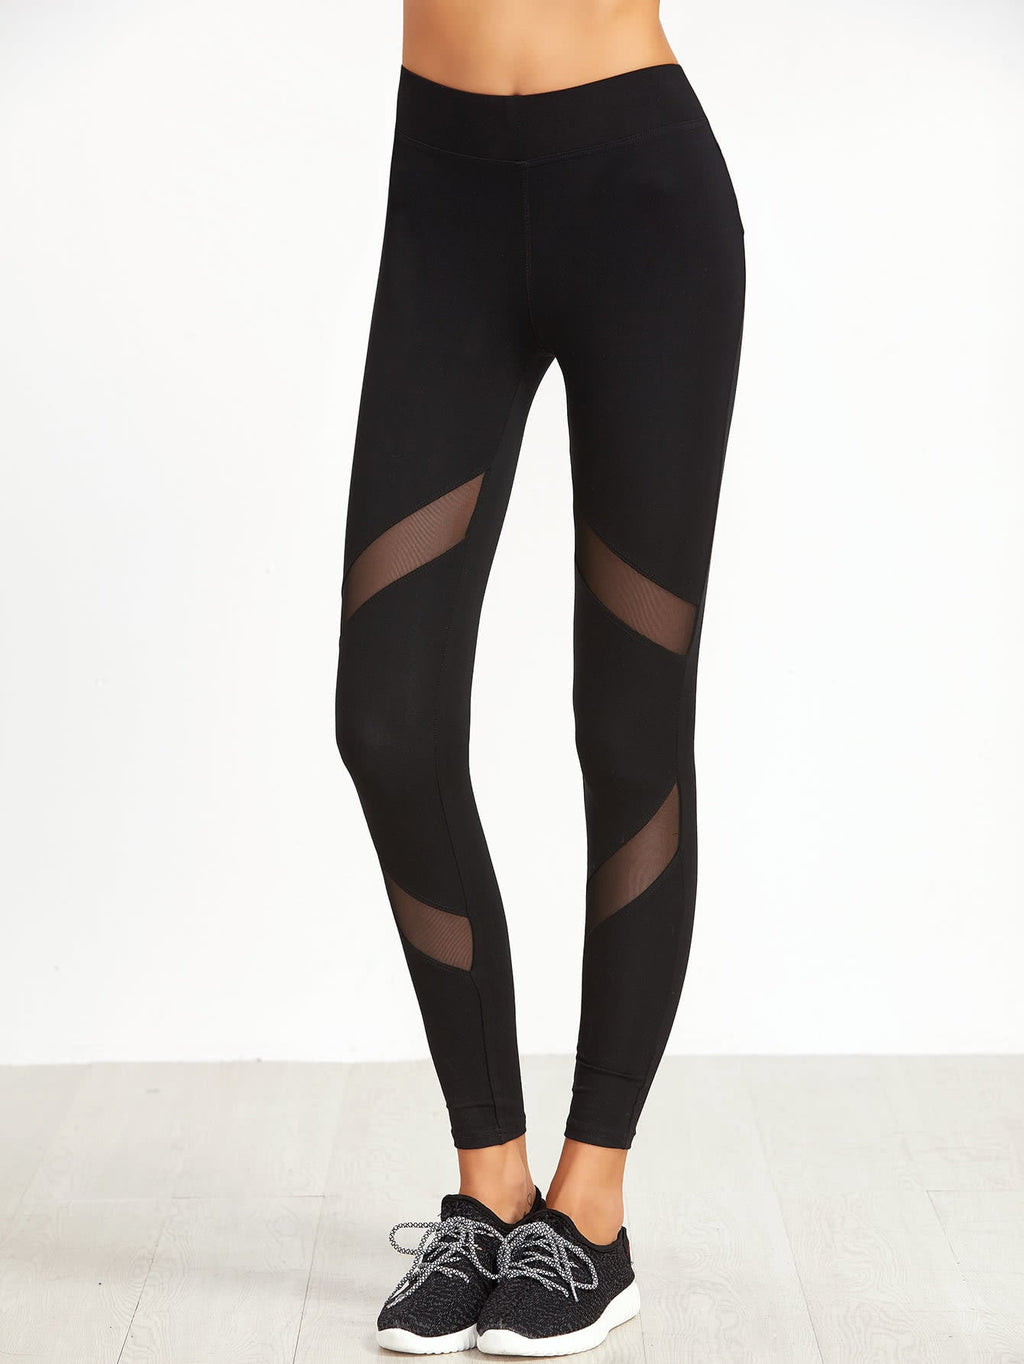 Leggings For Women - Mesh Insert Skinny Leggings